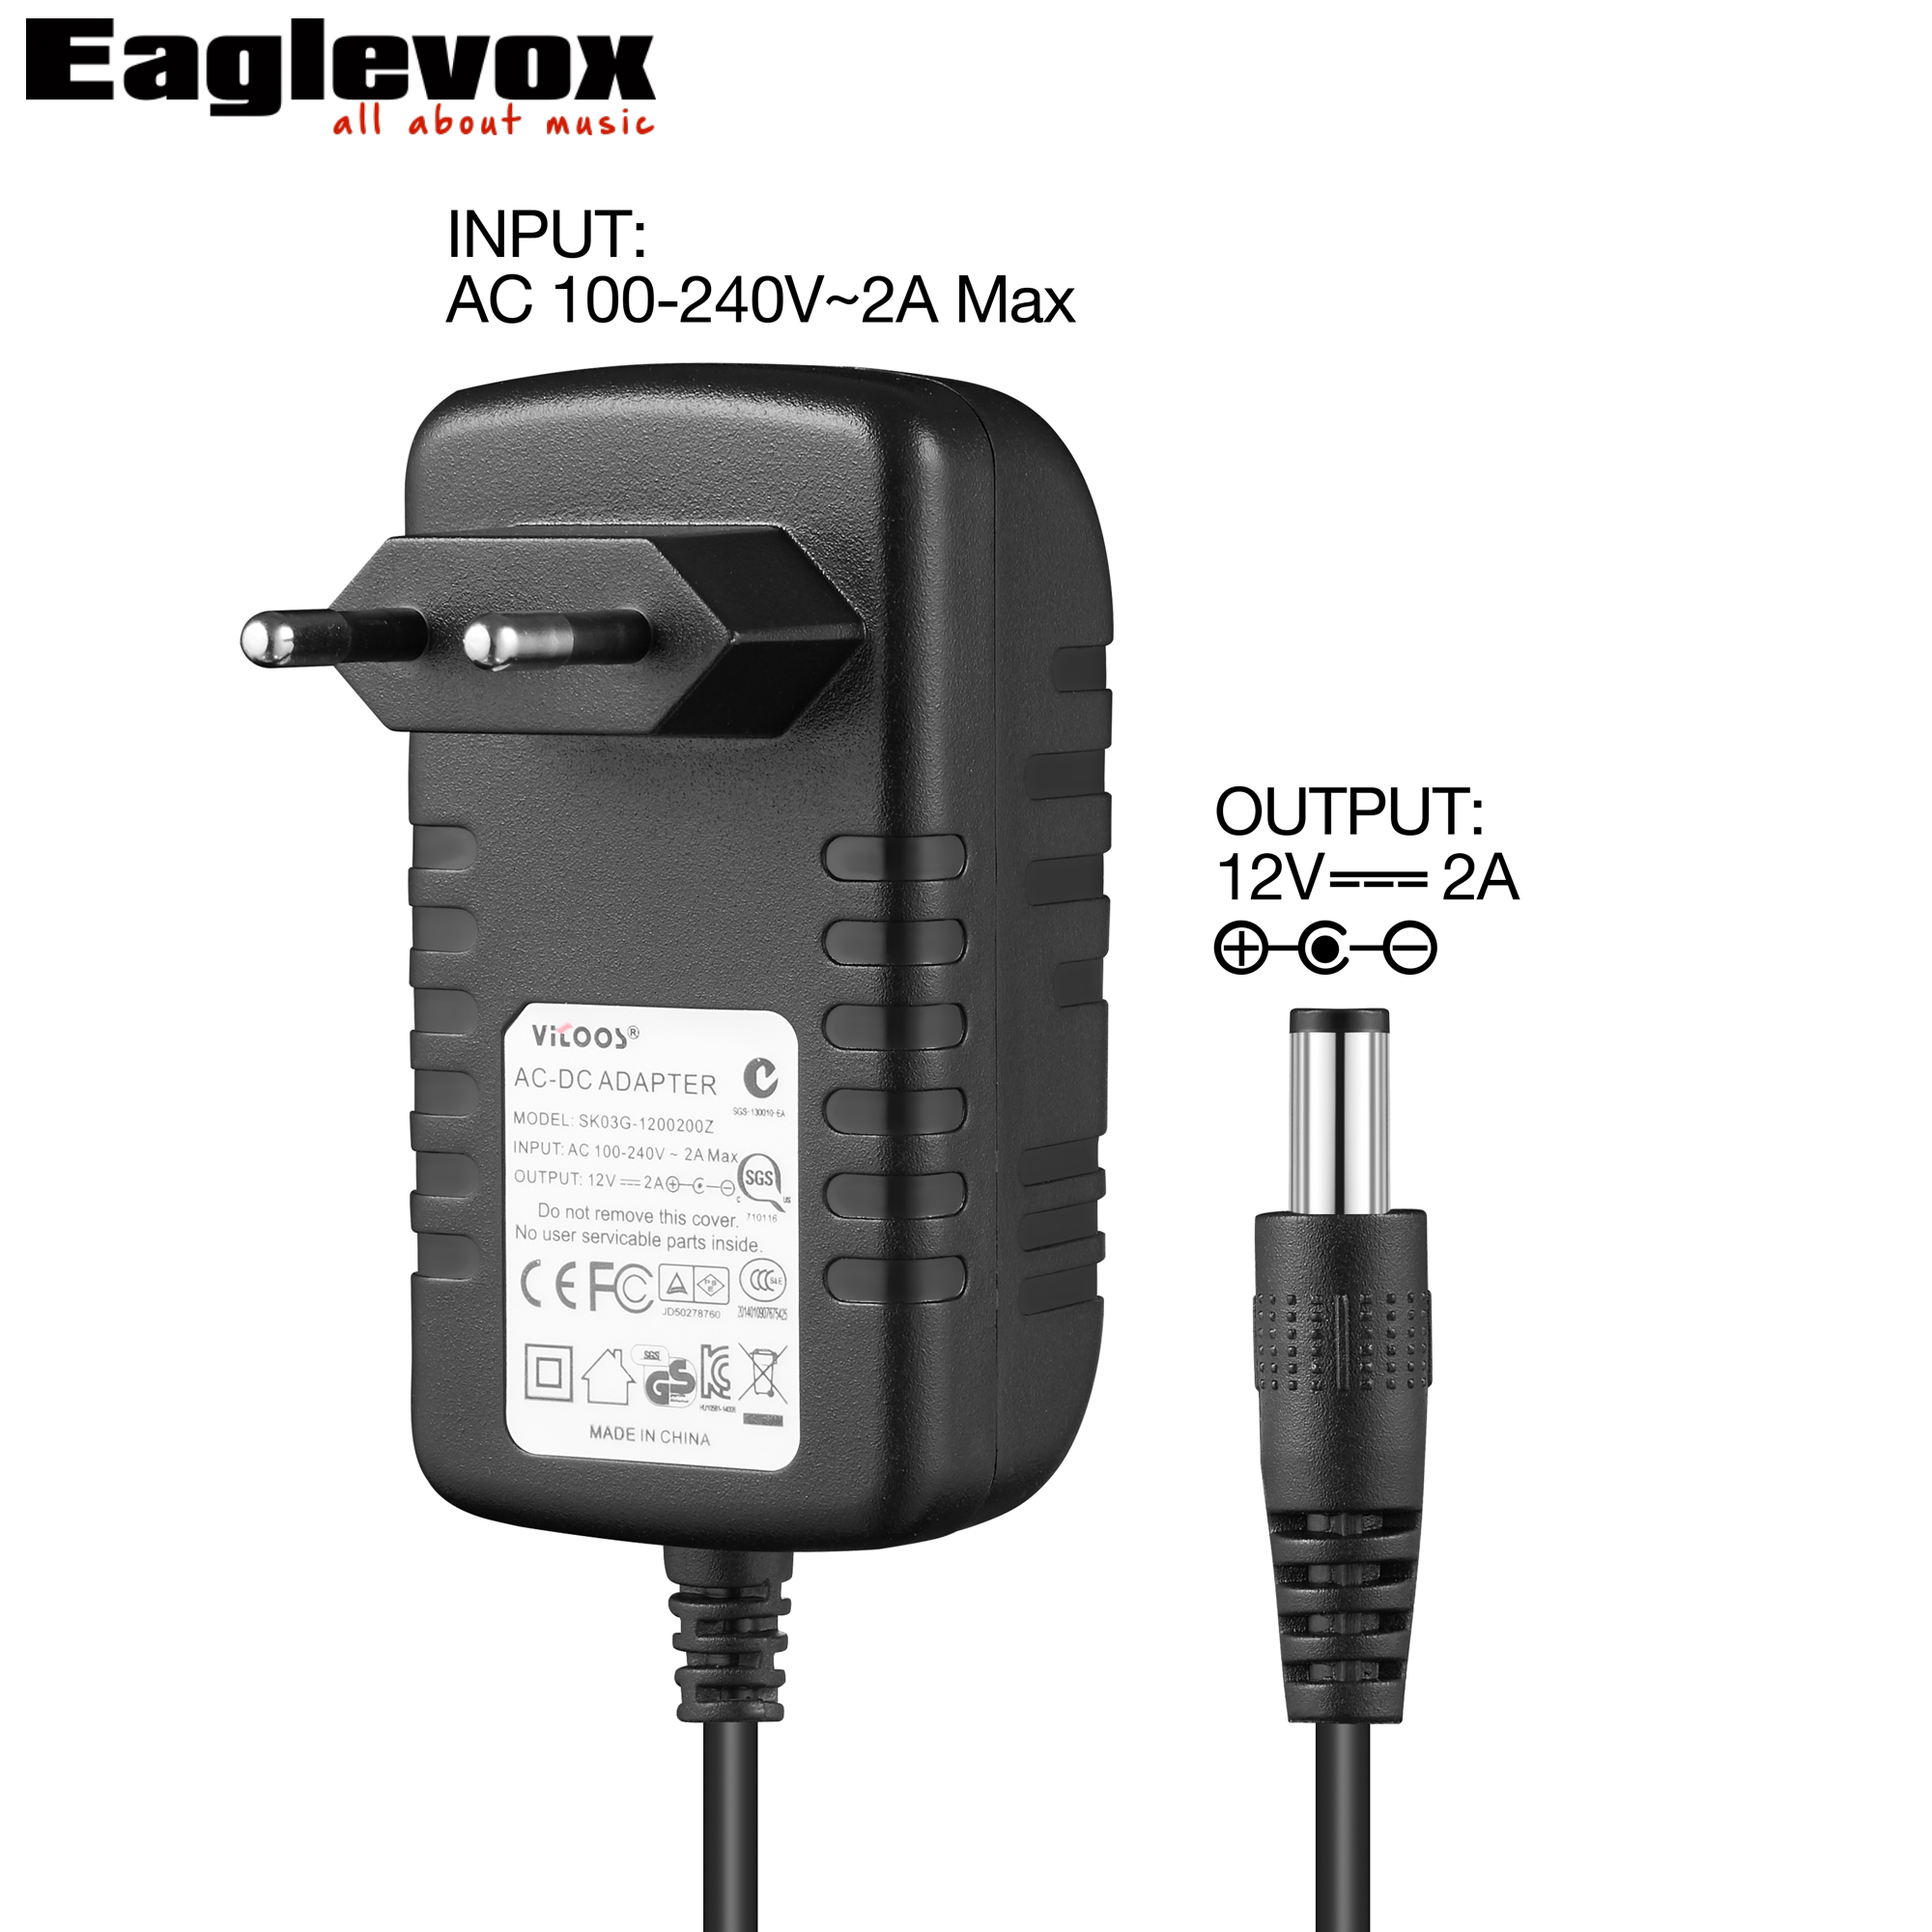 12V 2A Power Adapter Negative Center 100-240V Converter Noiseless Technology for Guitar Effect Pedal AU Plug I Type Power Supply 2 set lot neutrik powercon type a nac3fca nac3mpa 1 chassis plug panel adapter